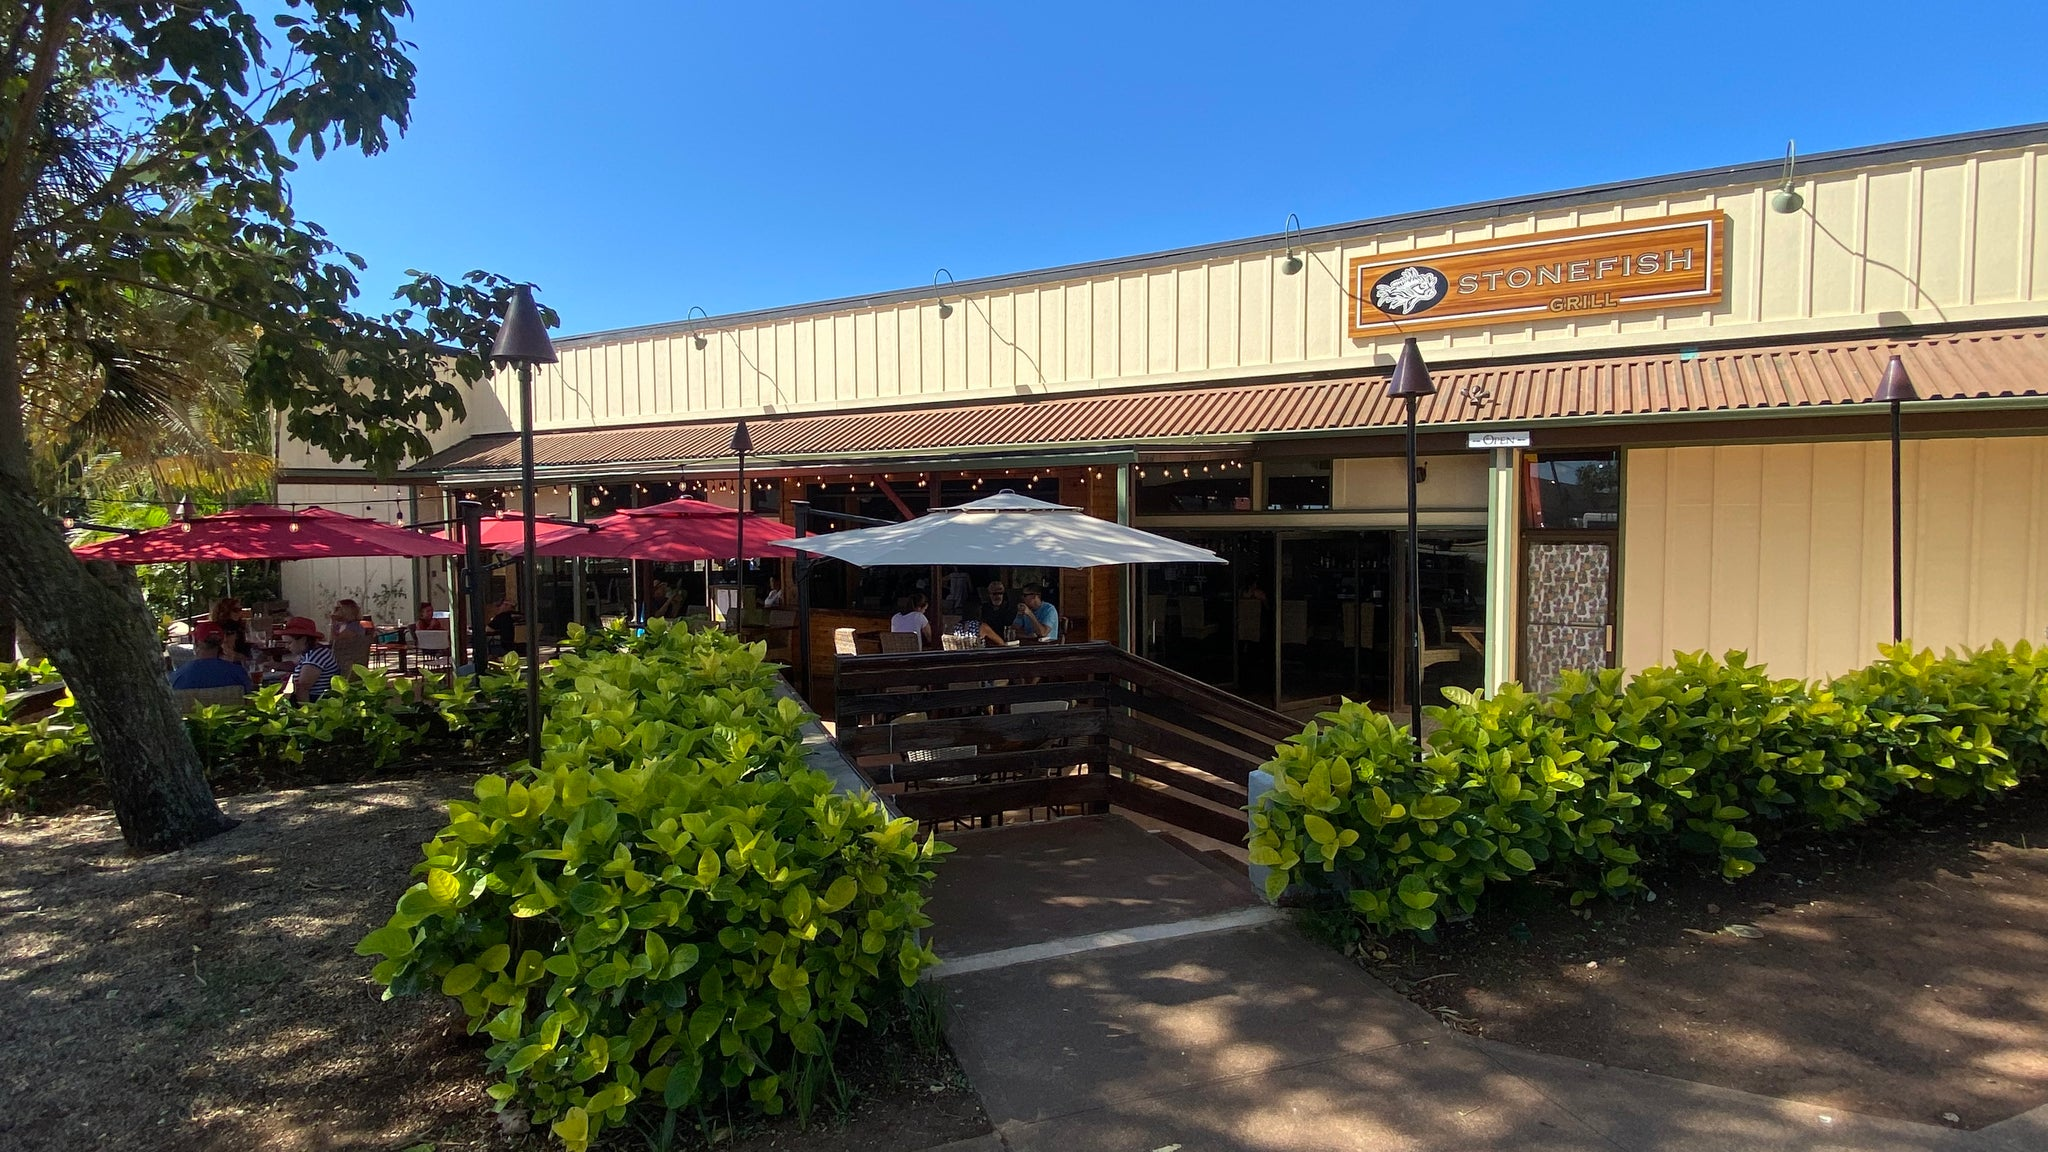 Welcoming Stonefish Grill - A New Restaurant at Haleiwa Town Center